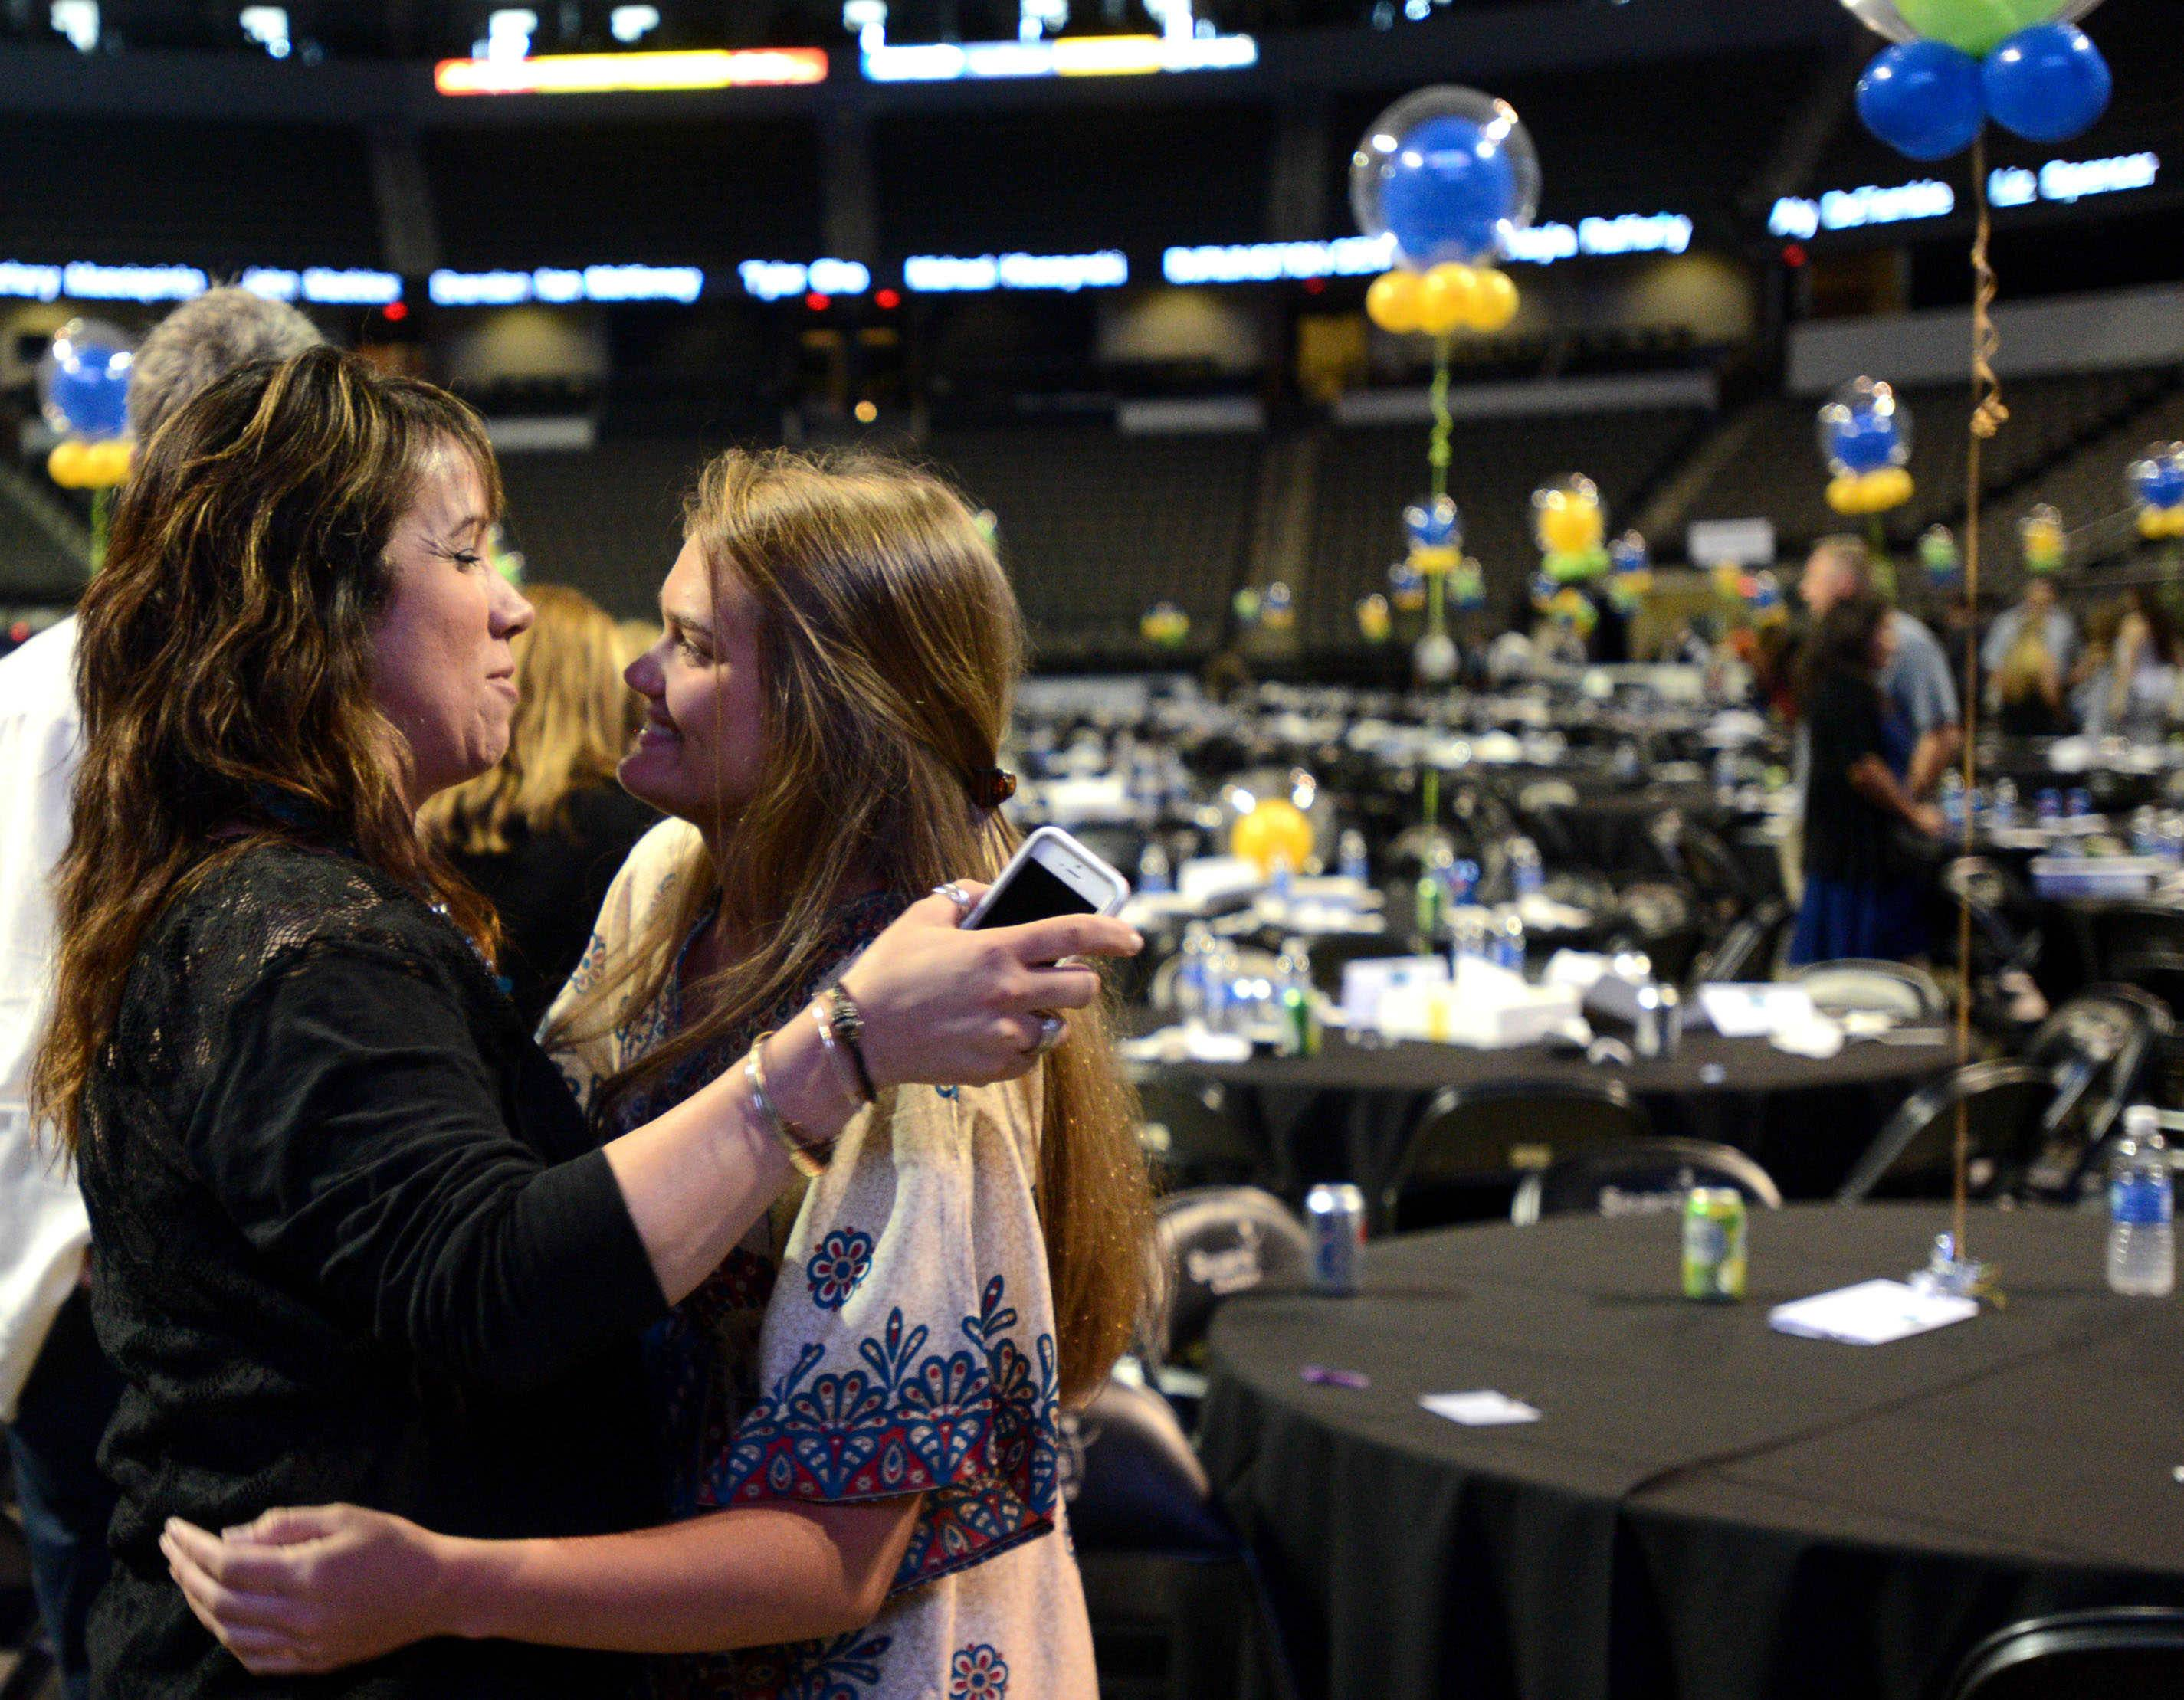 Rolling Meadows' swimming coach Monika Chiapetta, left, congratulates Wheeling's Theresa Godlewski following the Daily Herald Prep Excellence awards banquet Sunday at the Sears Centre Arena in Hoffman Estates.